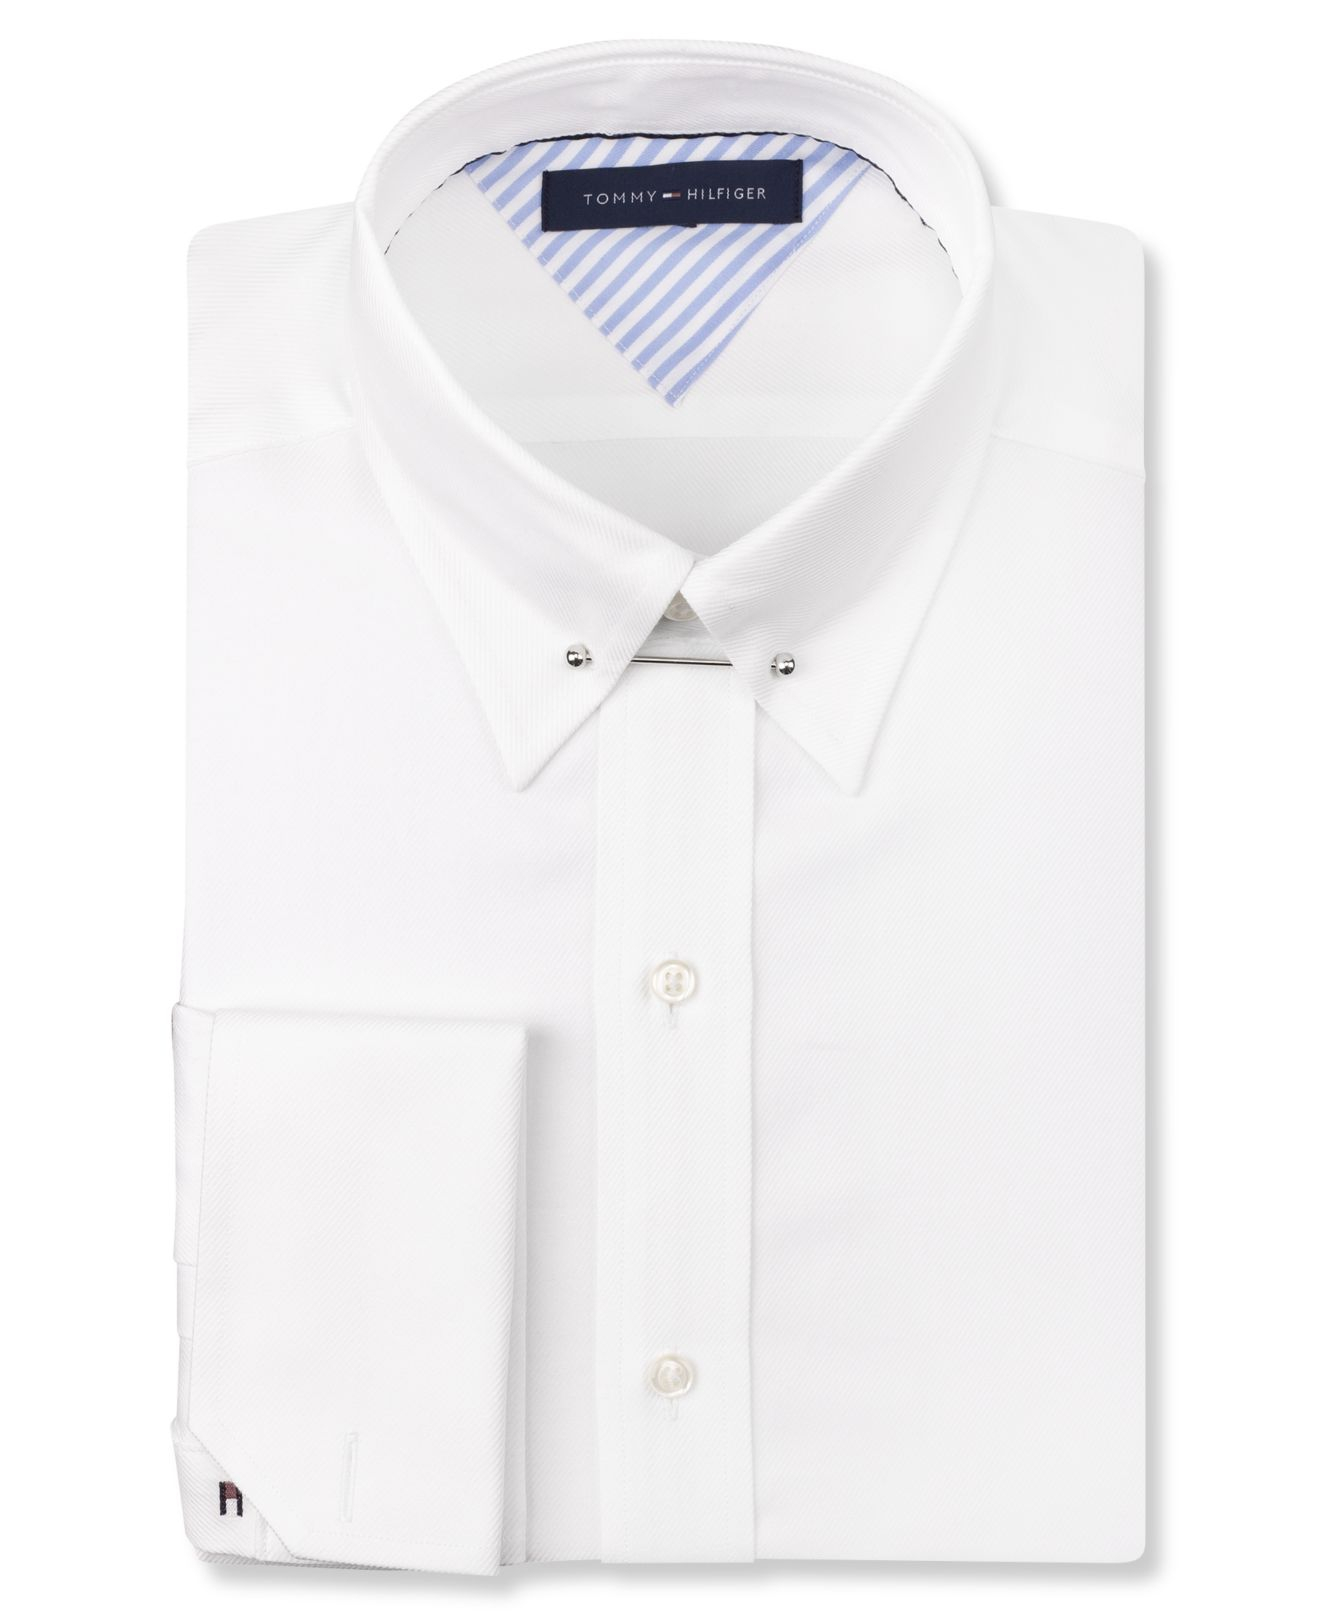 tommy hilfiger white french cuff dress shirt with collar